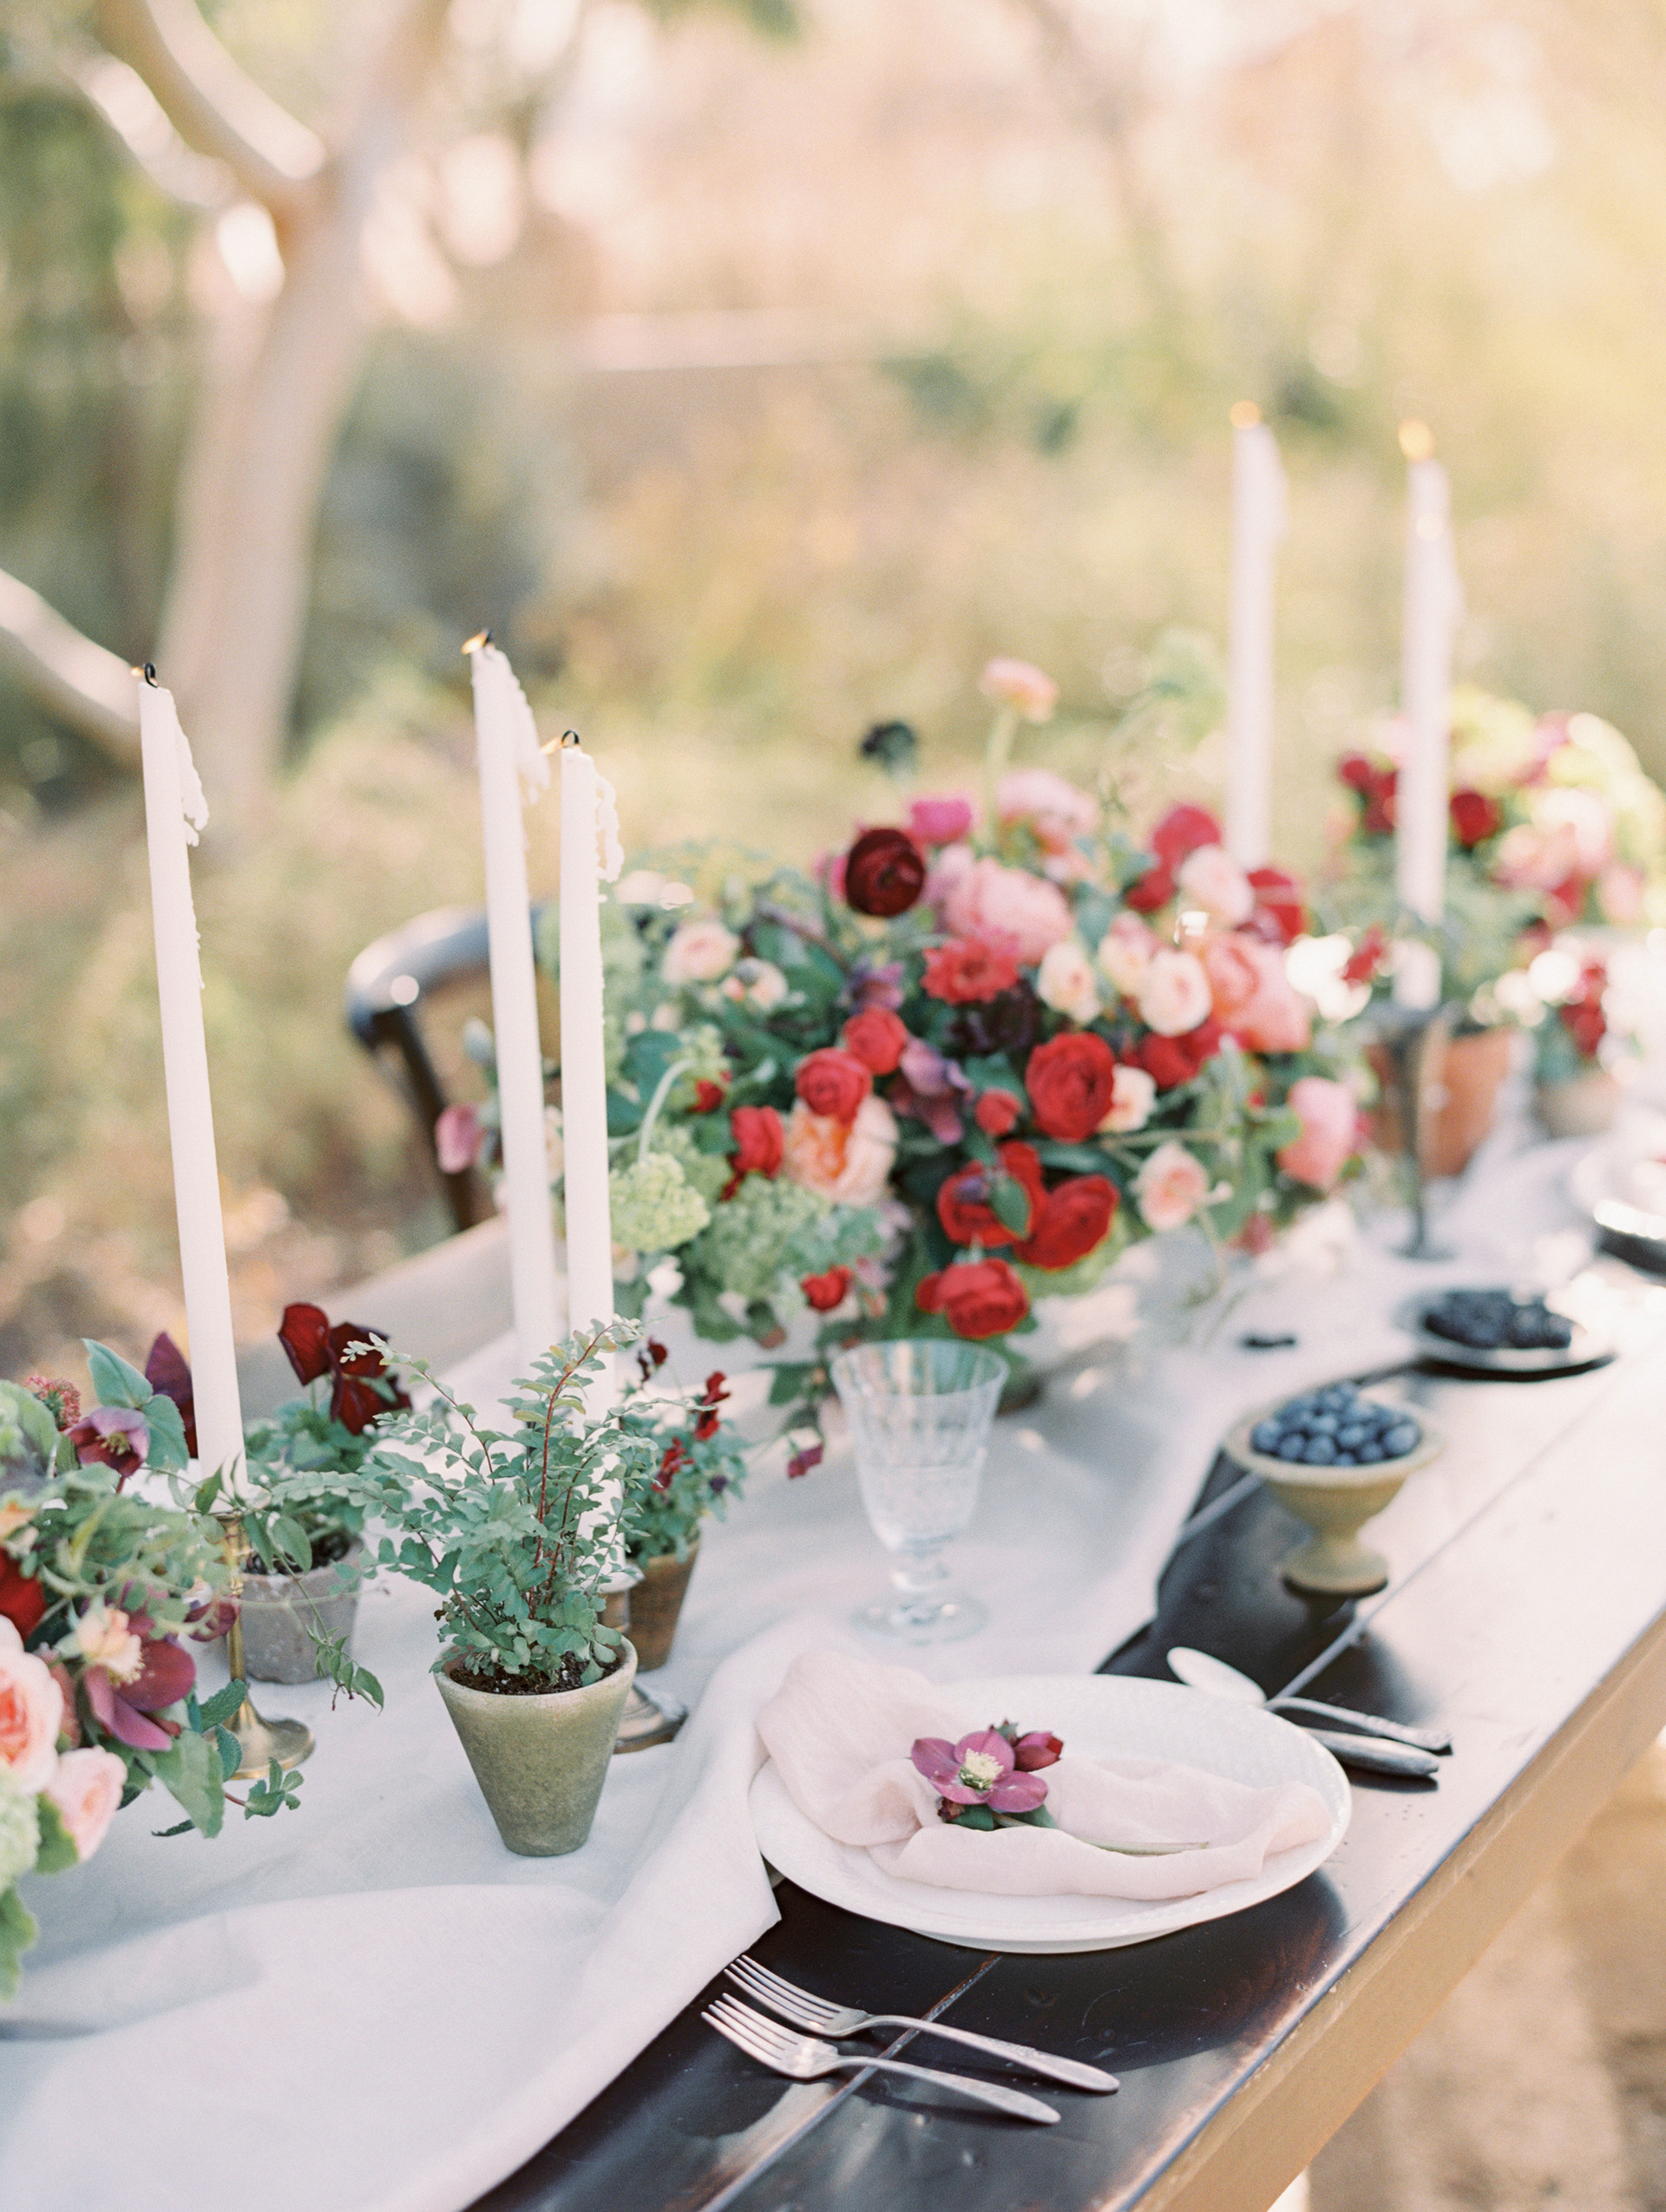 Garden-inspired wedding reception with lush floral centerpieces and potted herb and blooming plants. Photo: Gaby Jeter